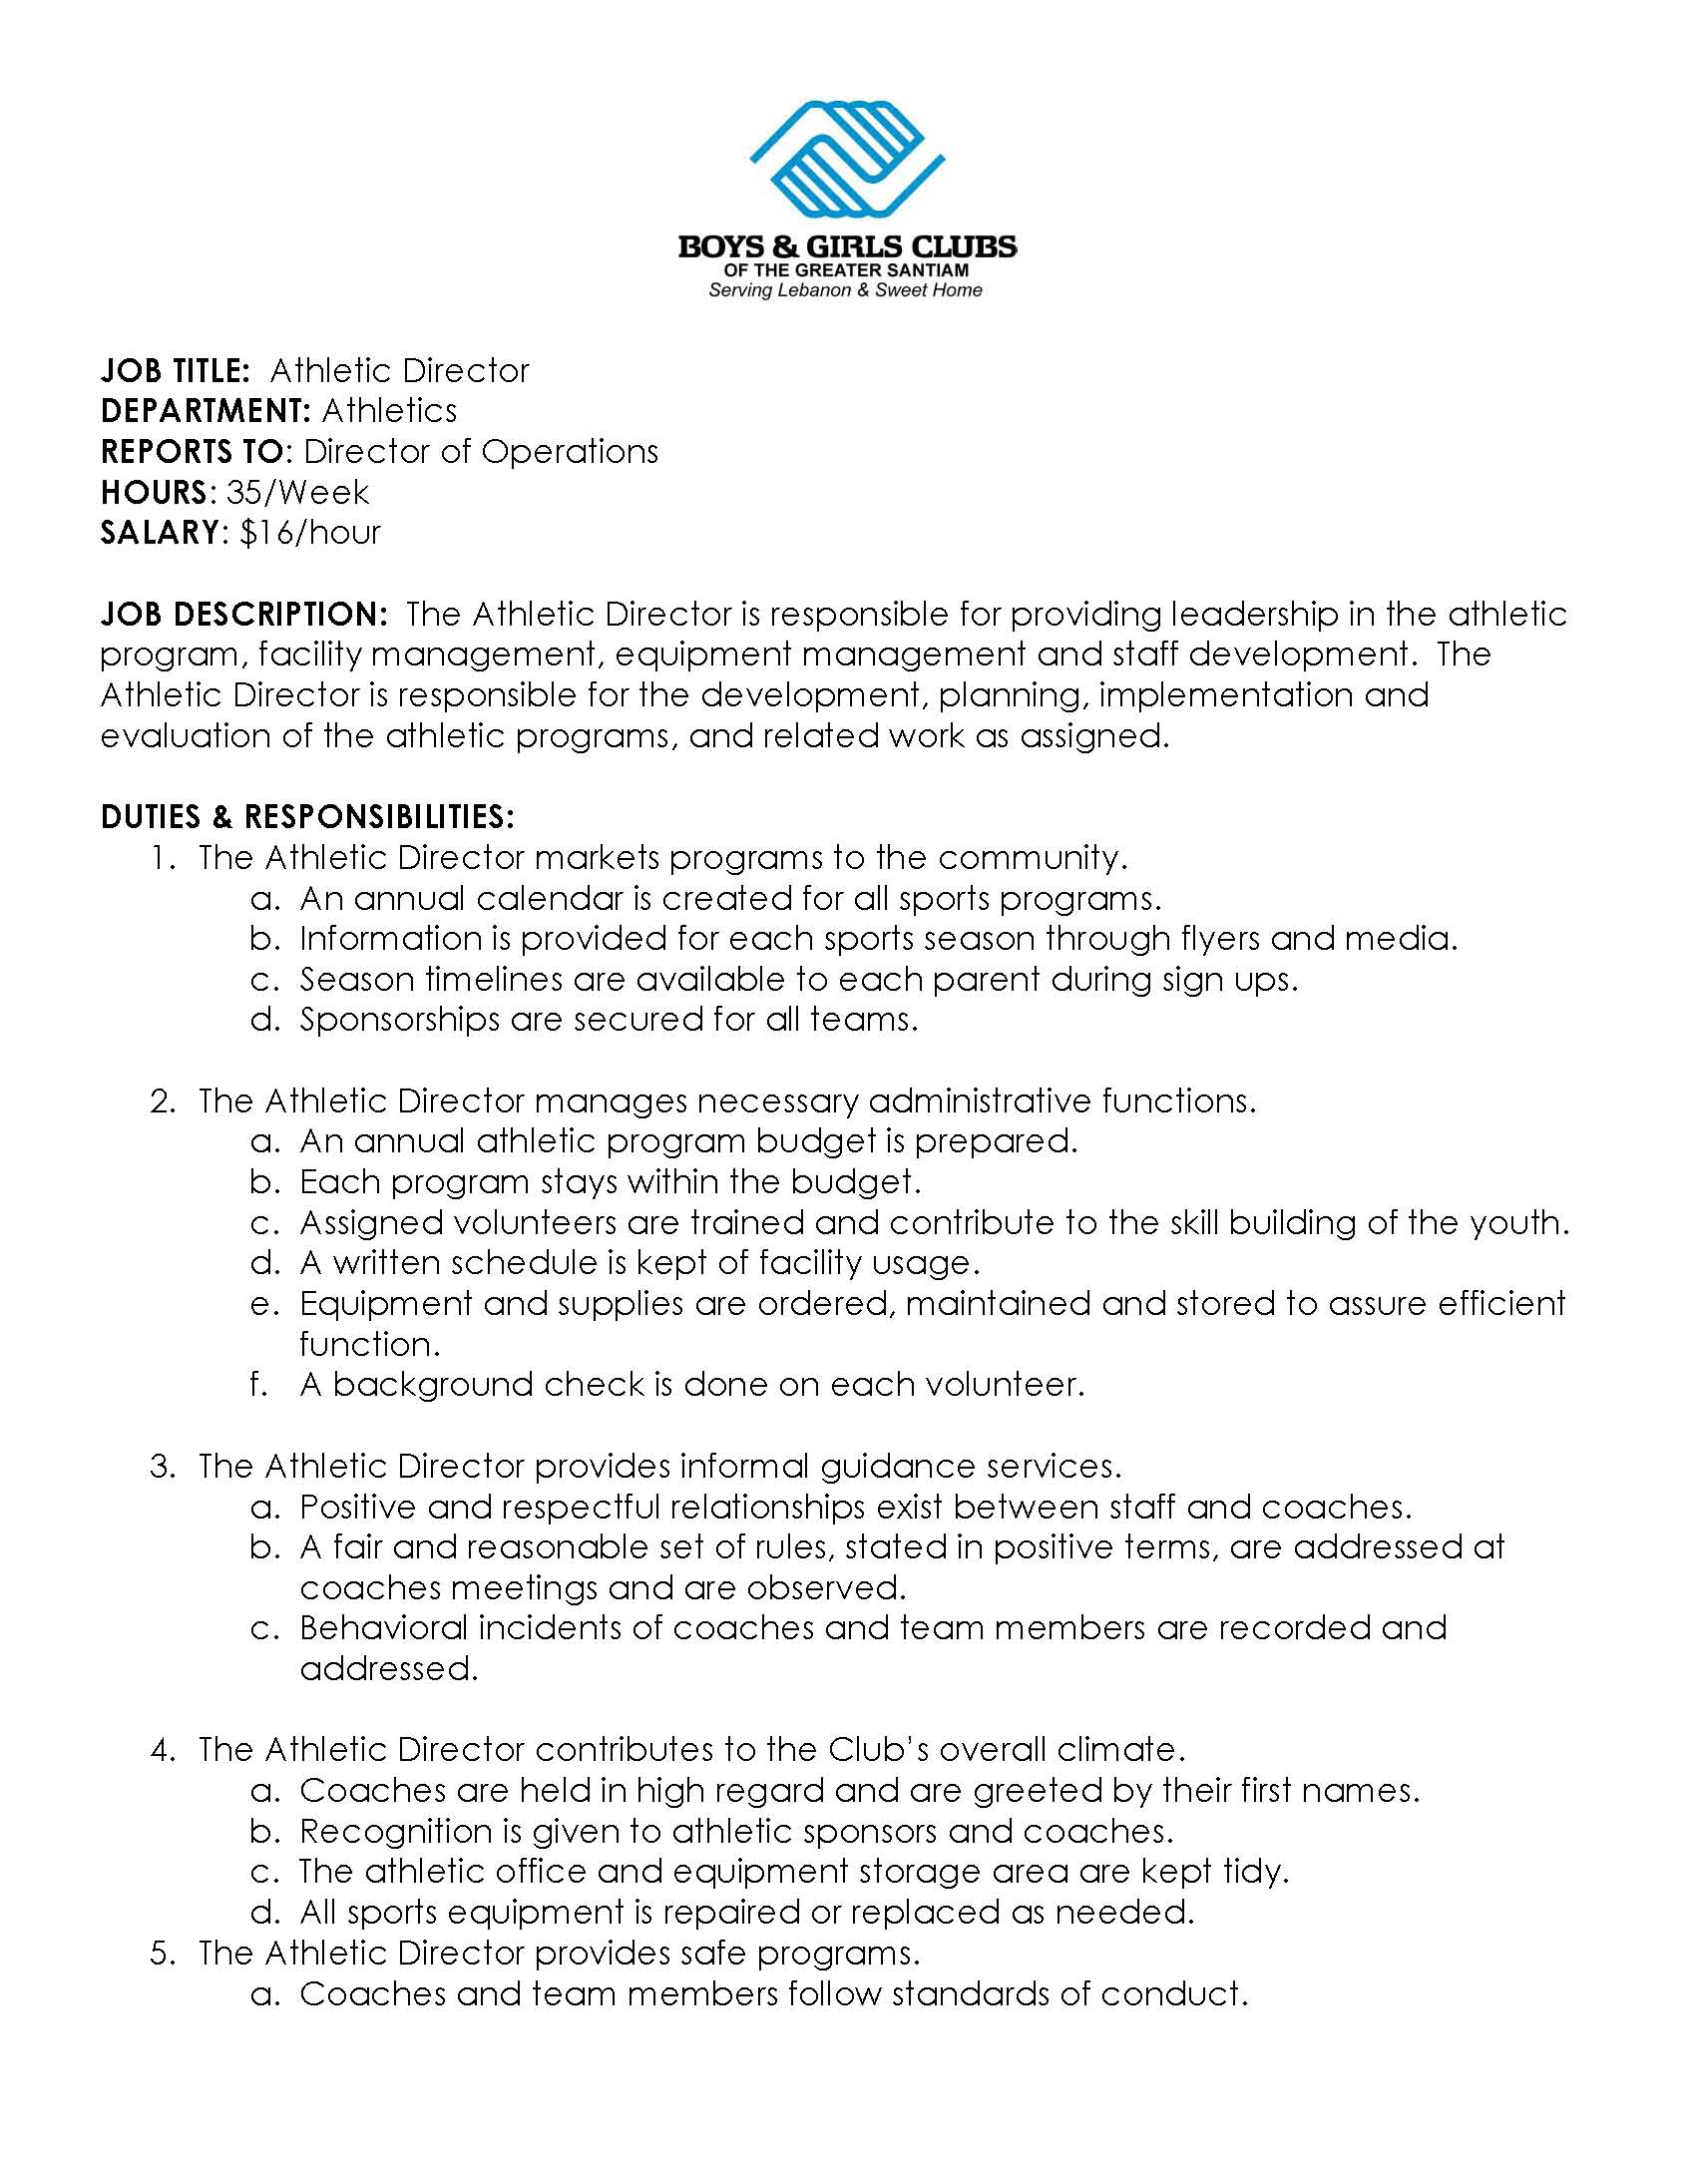 athletic director service director job description